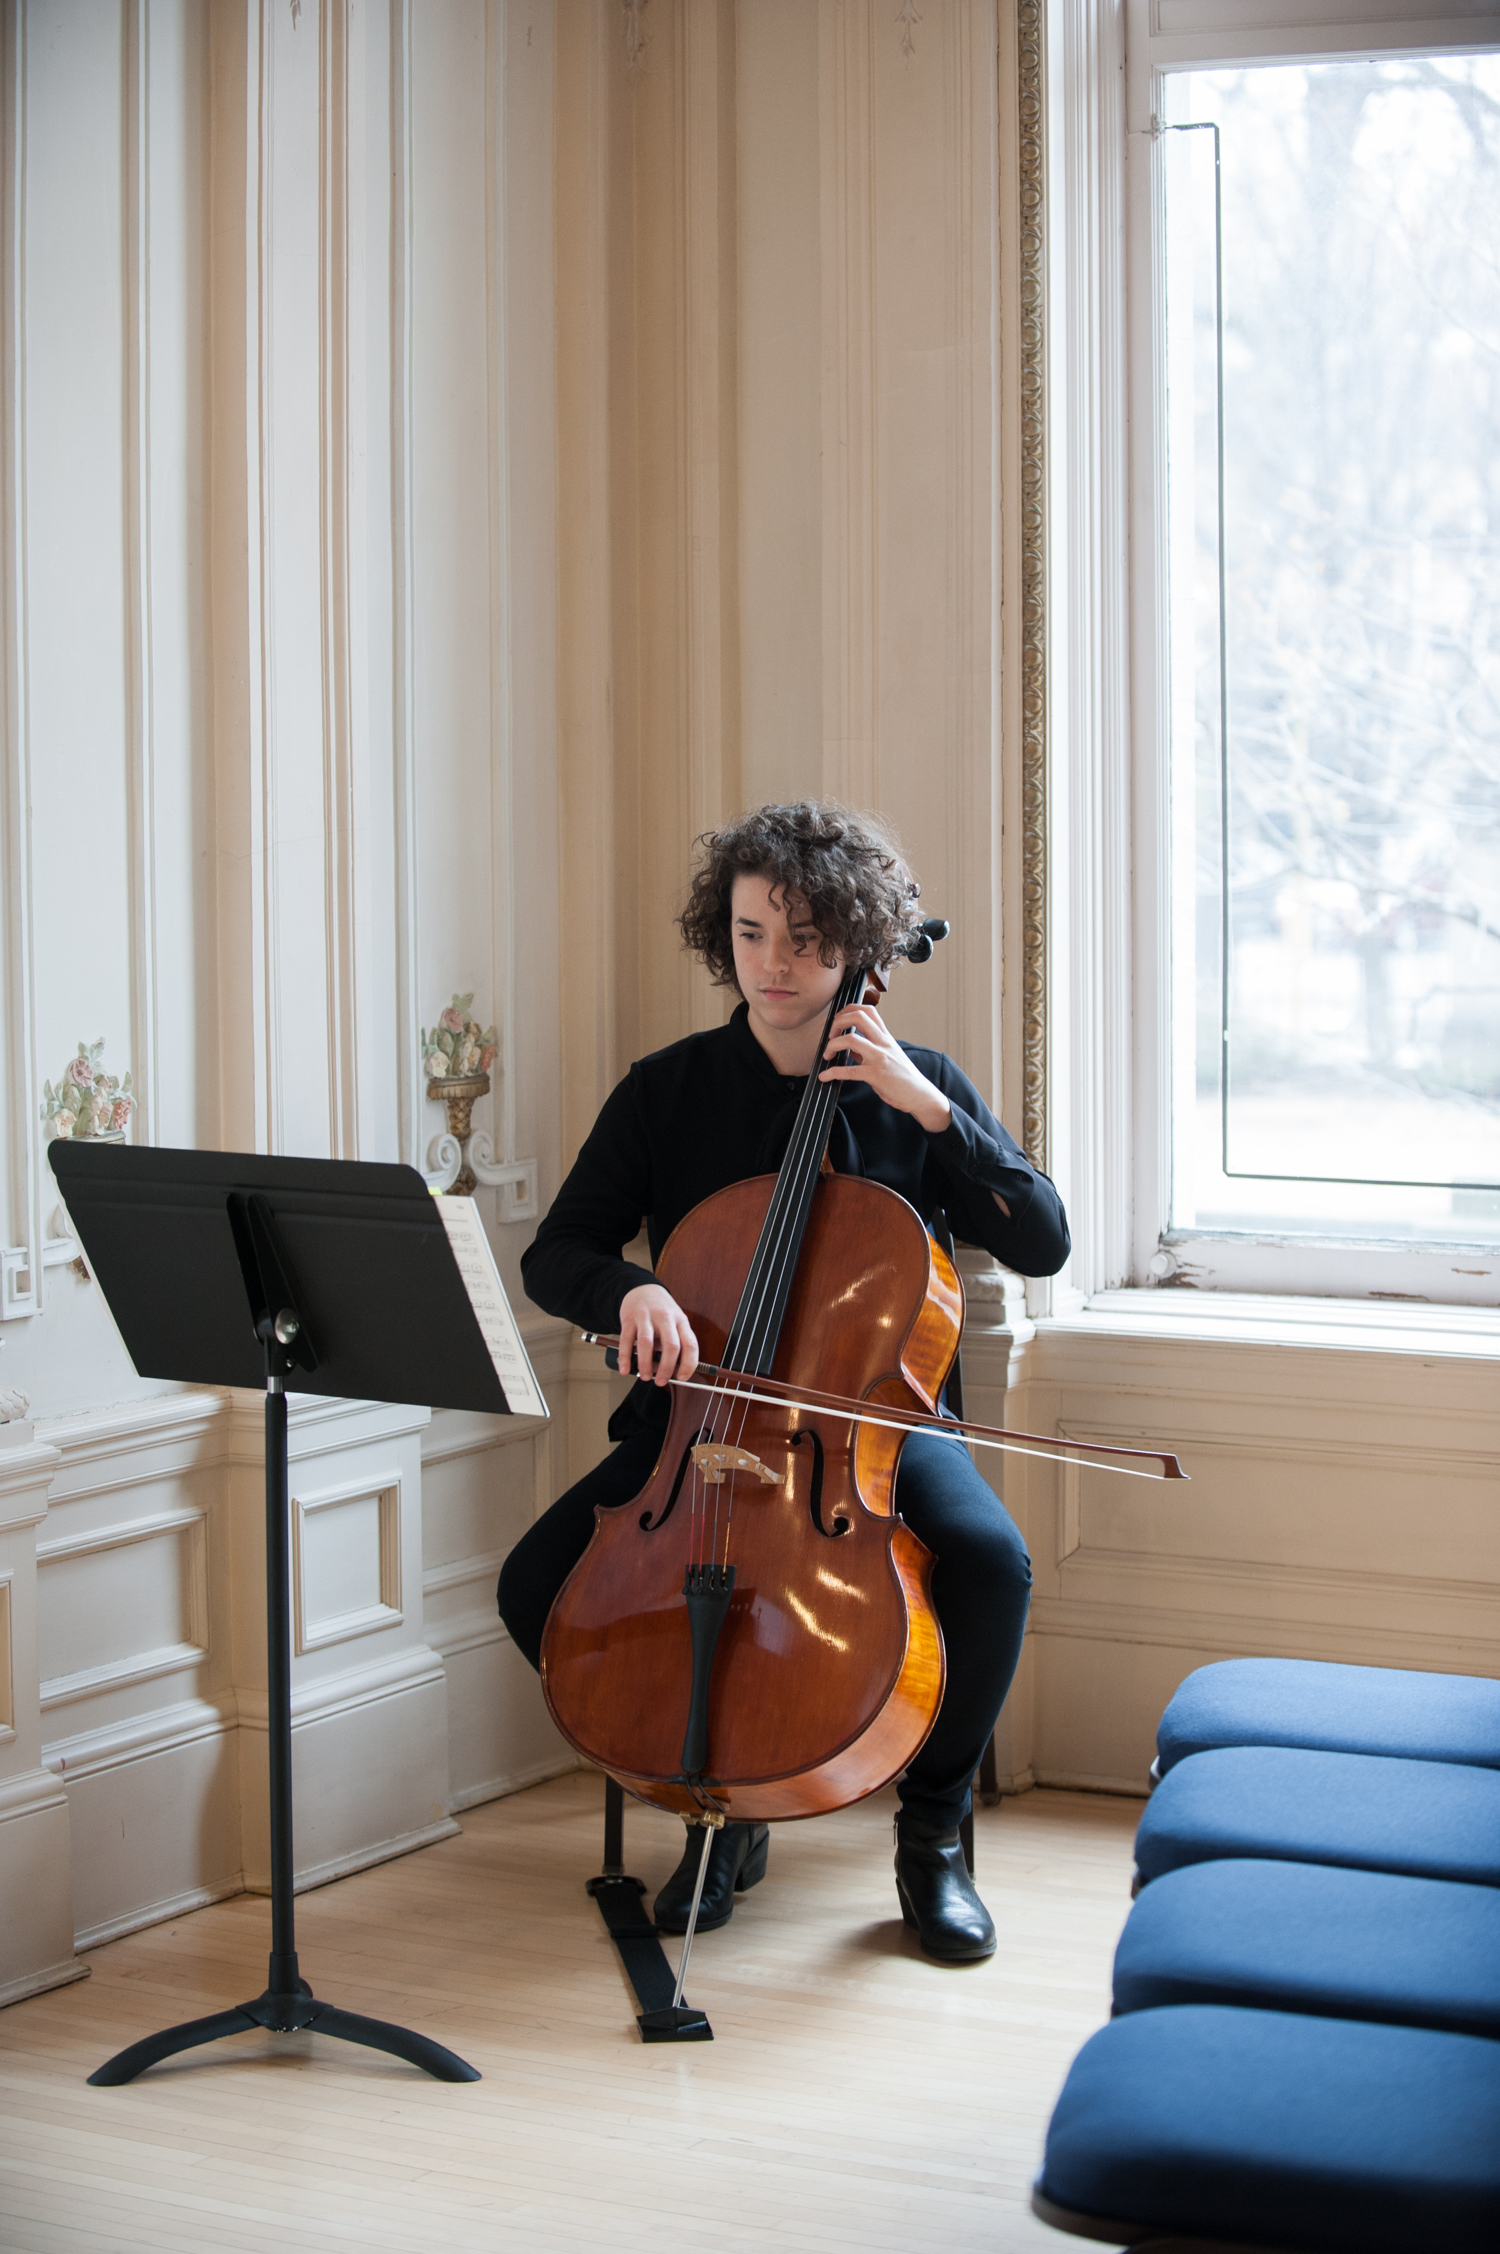 cello_player_at_indoor_minneapolis_wedding_ceremony.jpeg